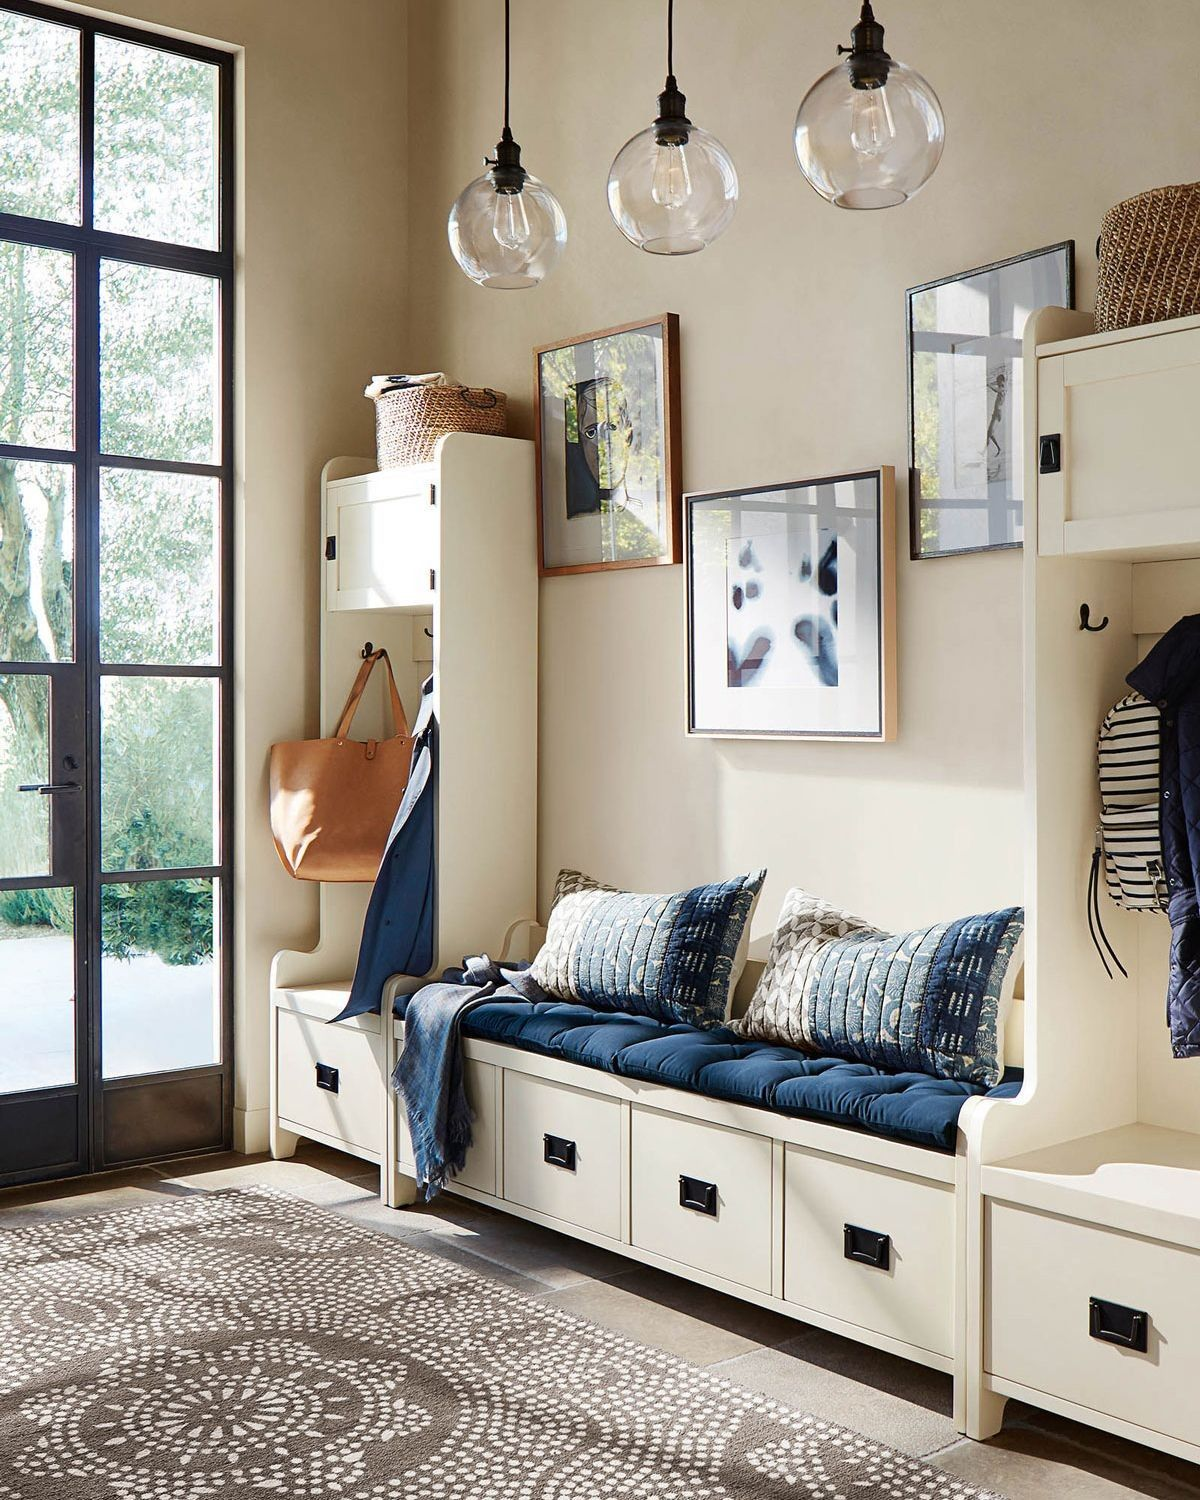 Pottery Barn Wall Colors With White Furniture in 2020